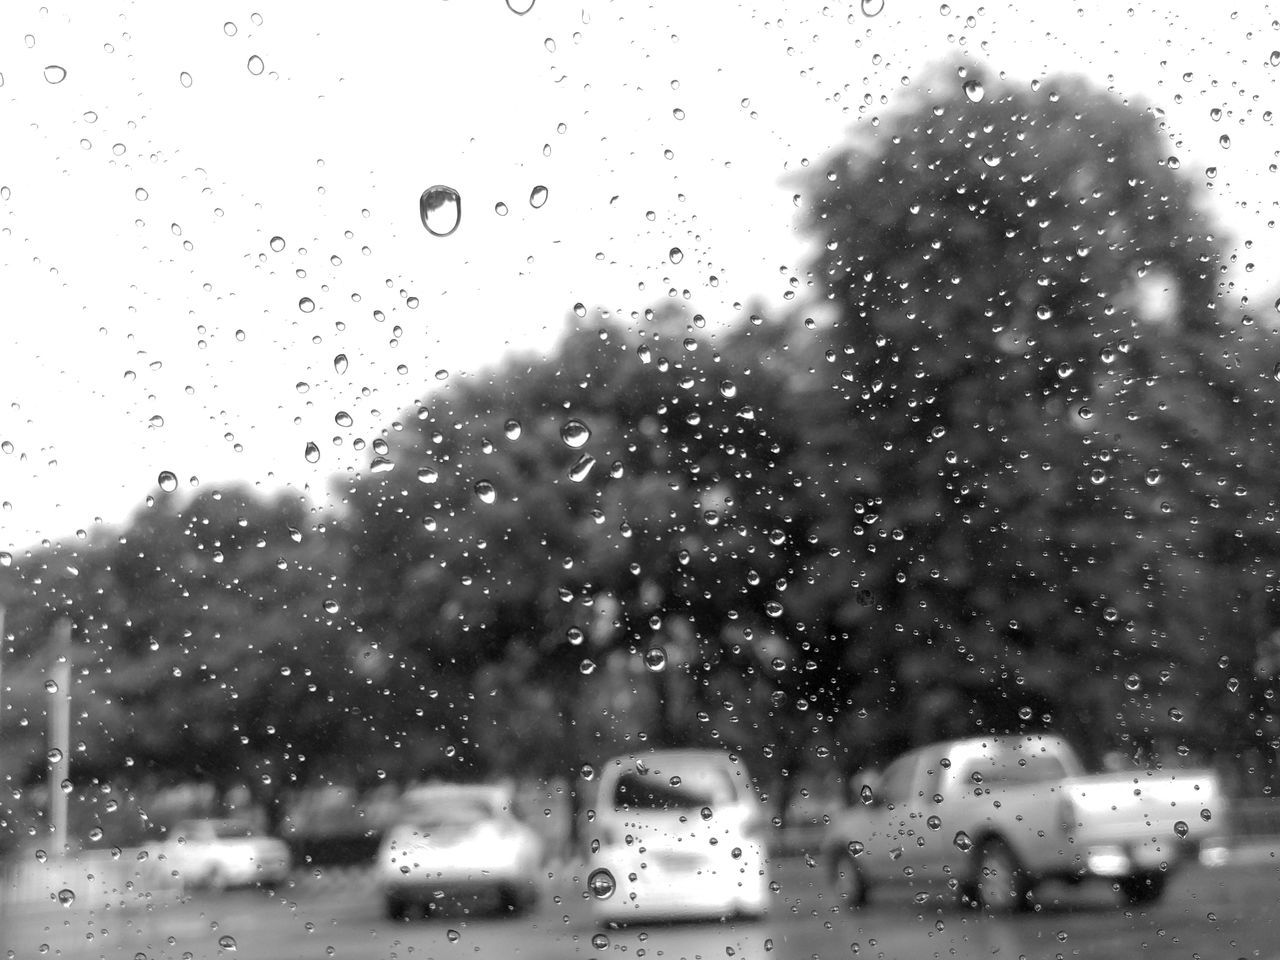 land vehicle, car, transportation, drop, mode of transport, glass - material, rain, street, wet, road, travel, window, raindrop, sky, looking through window, day, city, outdoors, water, no people, nature, architecture